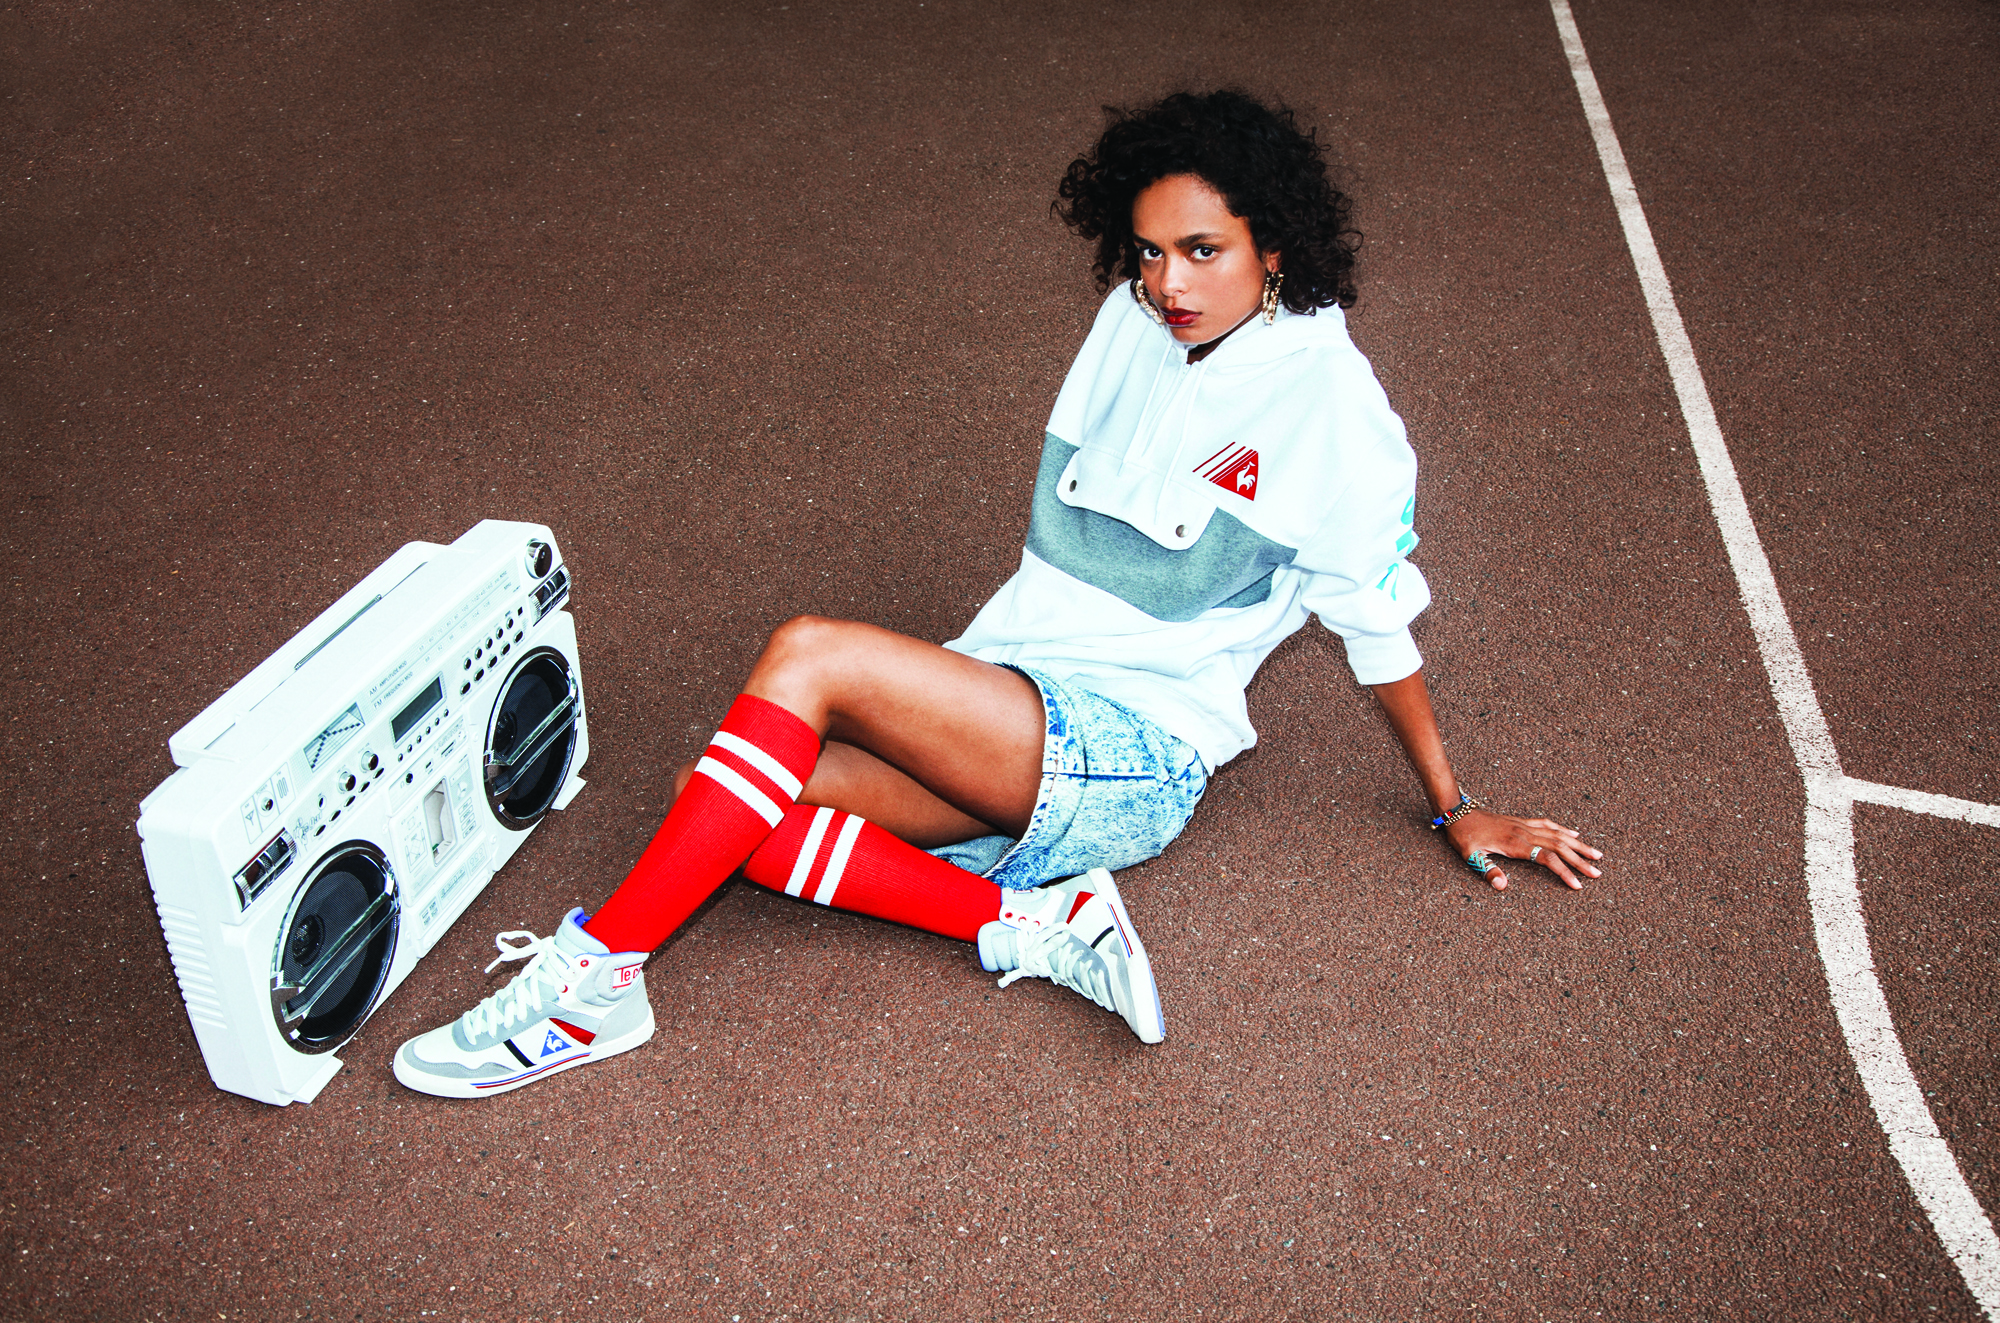 Game_On_le coq sportif_HD_6